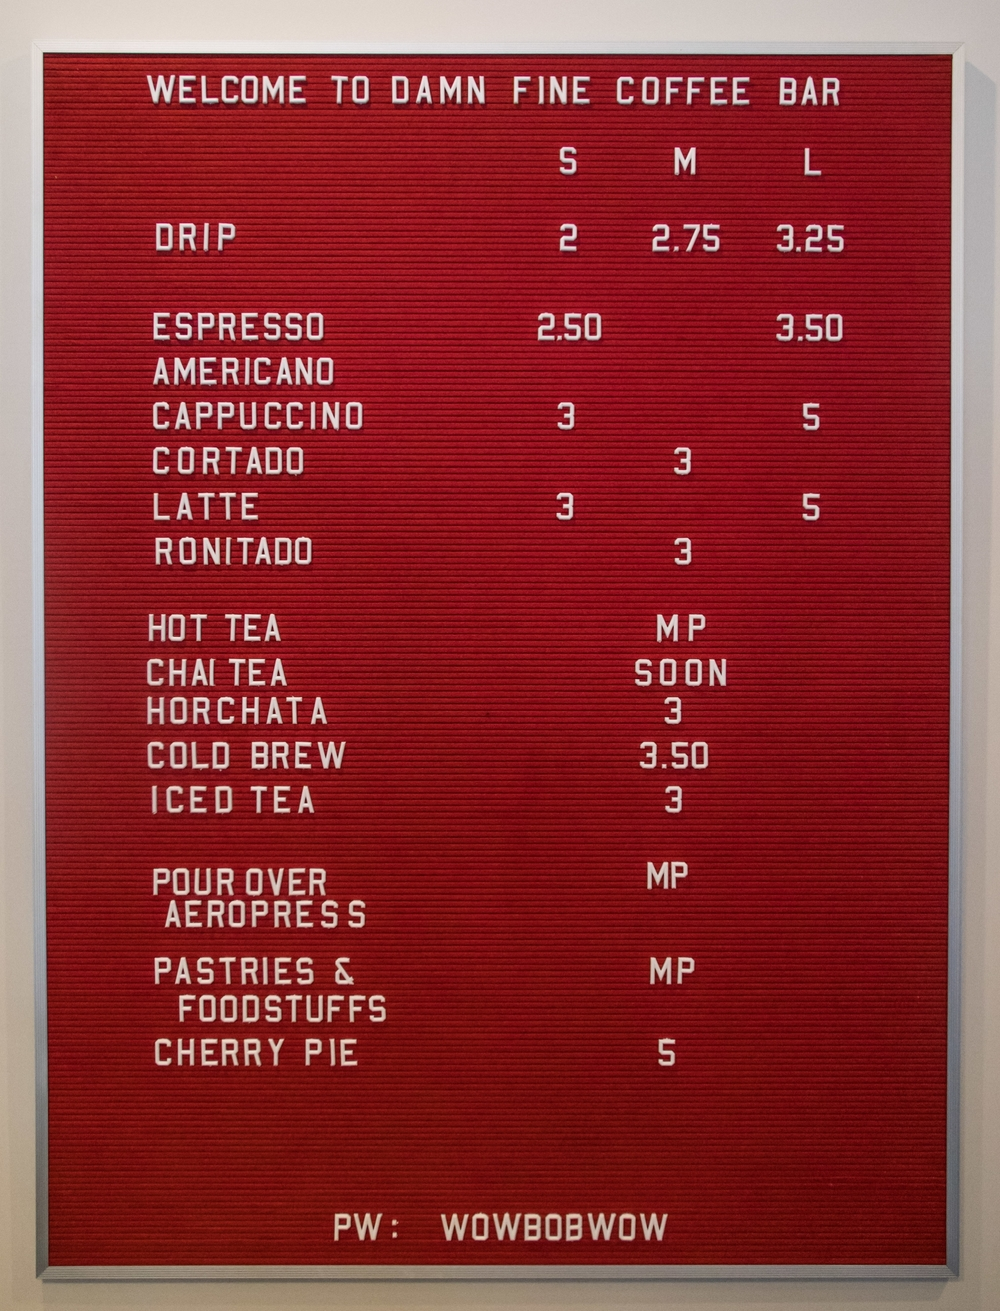 Just an FYI - this menu is not an accurate depiction of our offering.  It's just a photo of our menu board.